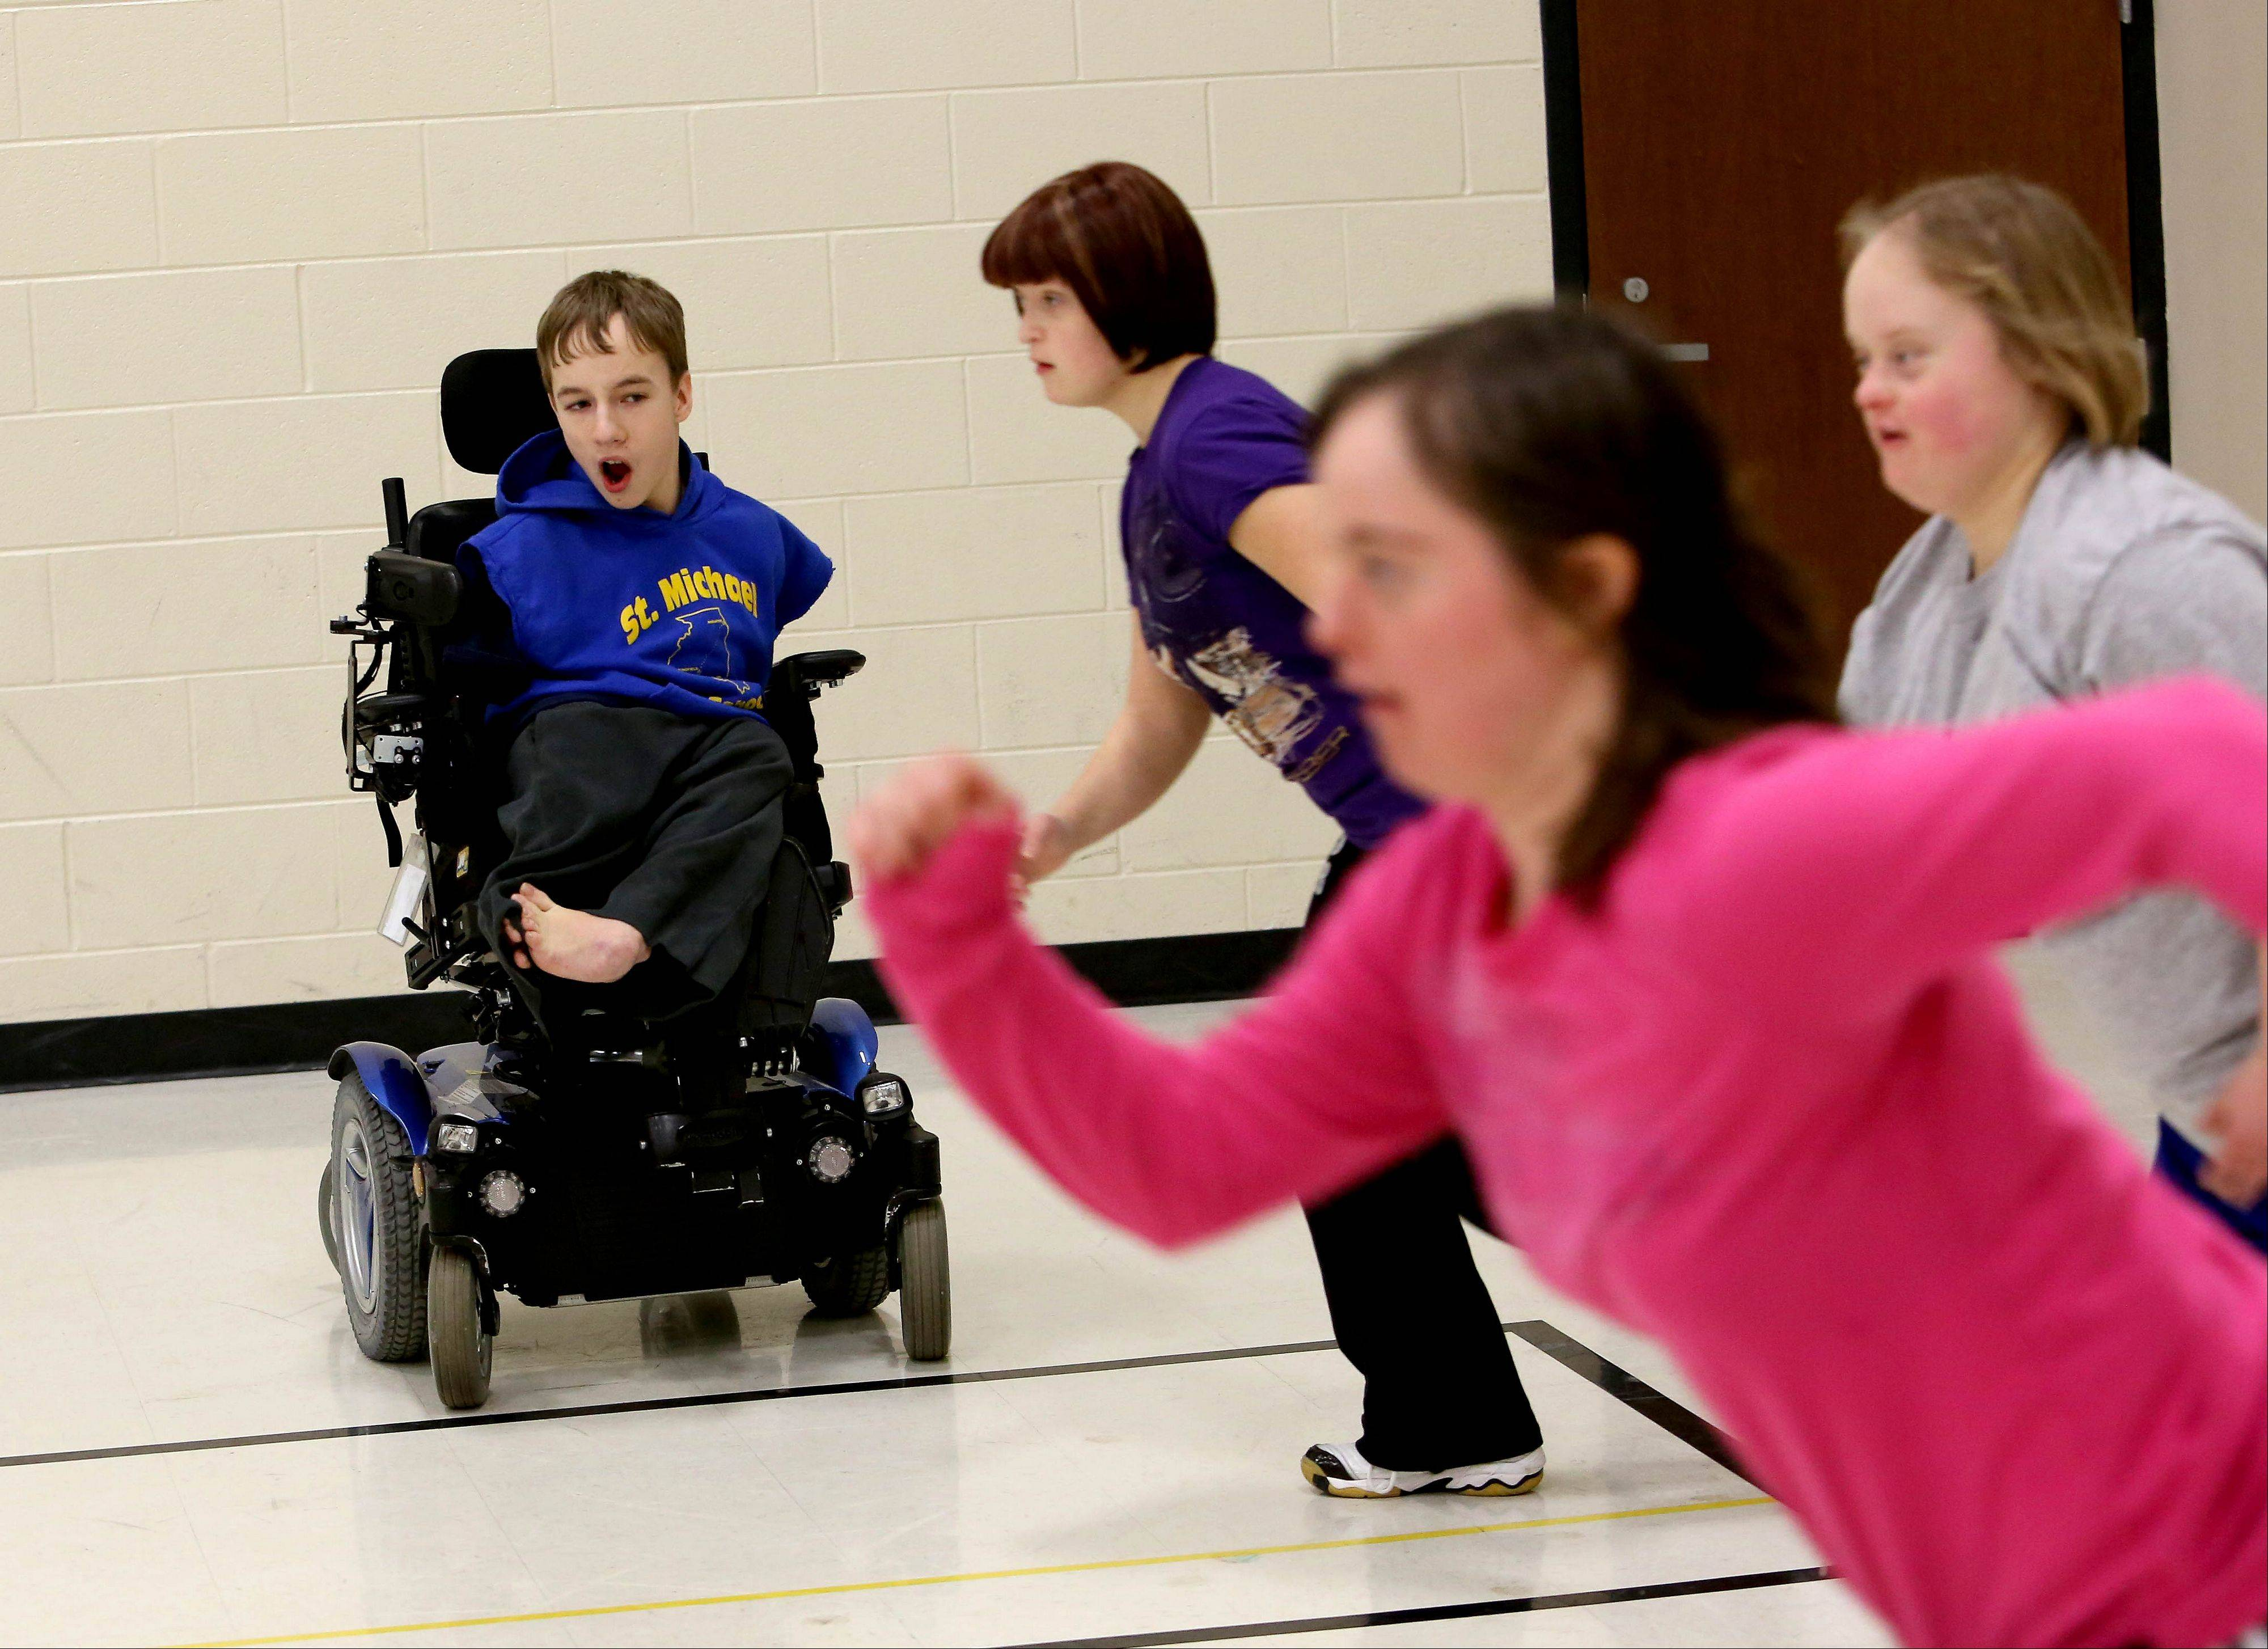 Connor McHugh, 13, of Wheaton encourages sprinters while helping the Special Olympics basketball and track teams at Hubble Middle School in Warrenville. During the fall, Connor serves as an assistant football coach at his school, St. Michael Parish School in Wheaton.